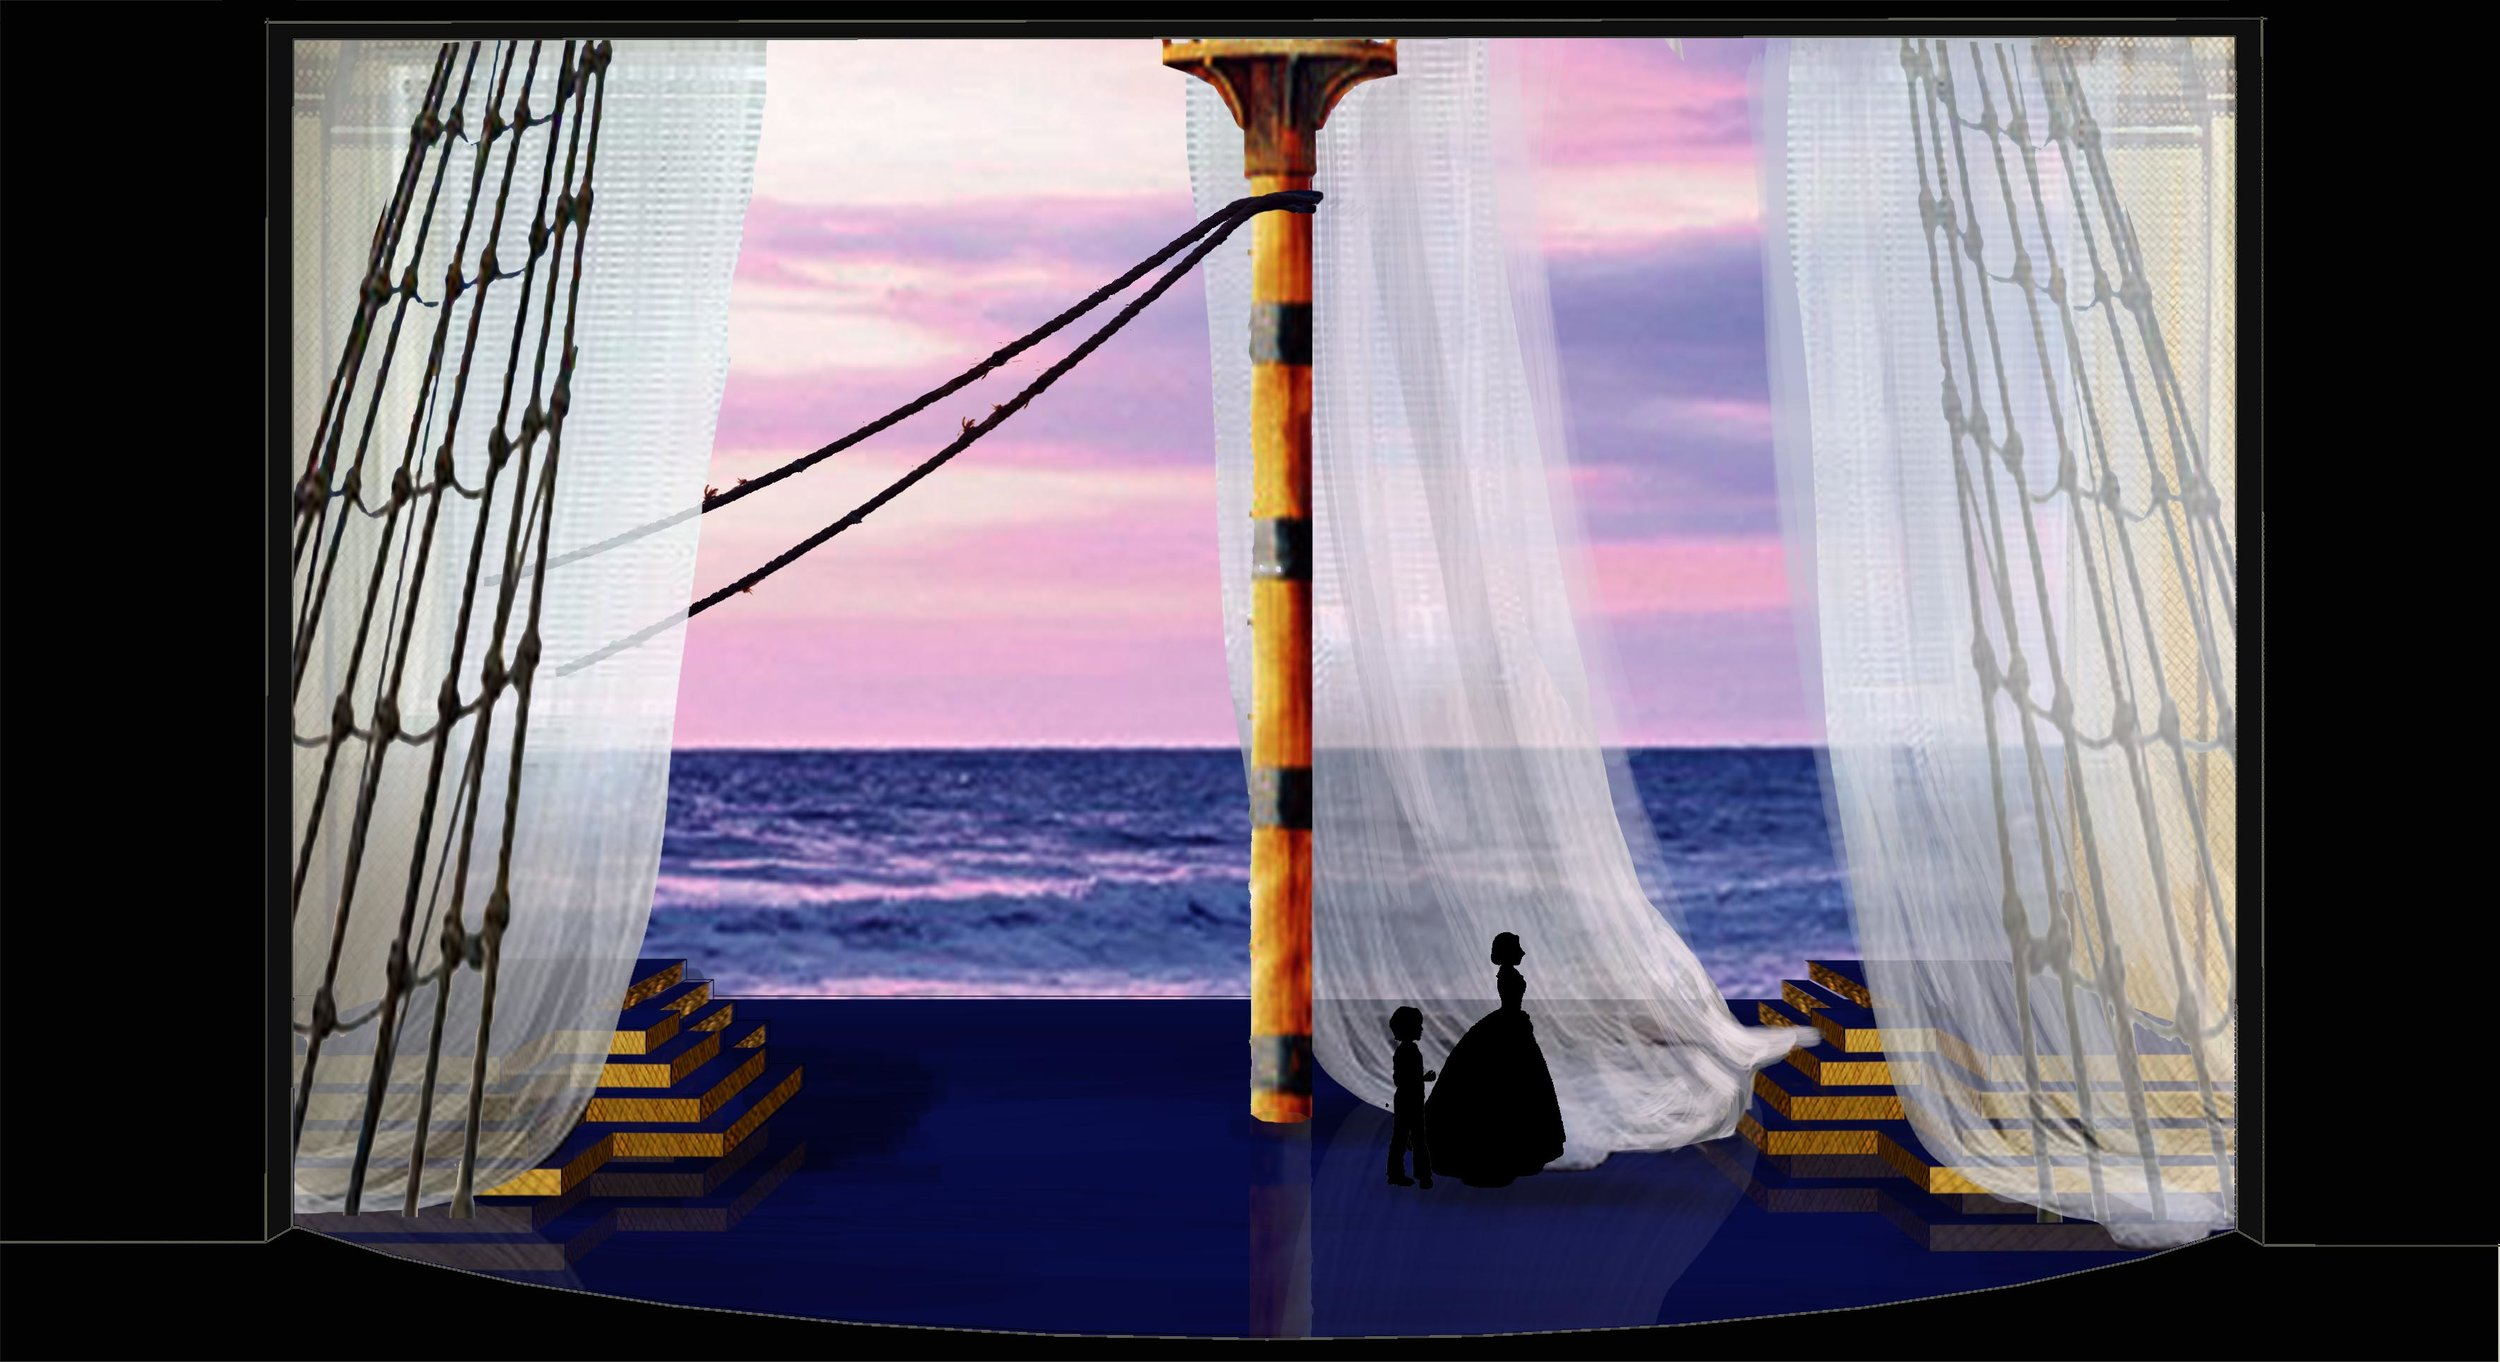 Theatre rendering for 'The King and I' by Oscar Hammerstein II - Ship deck